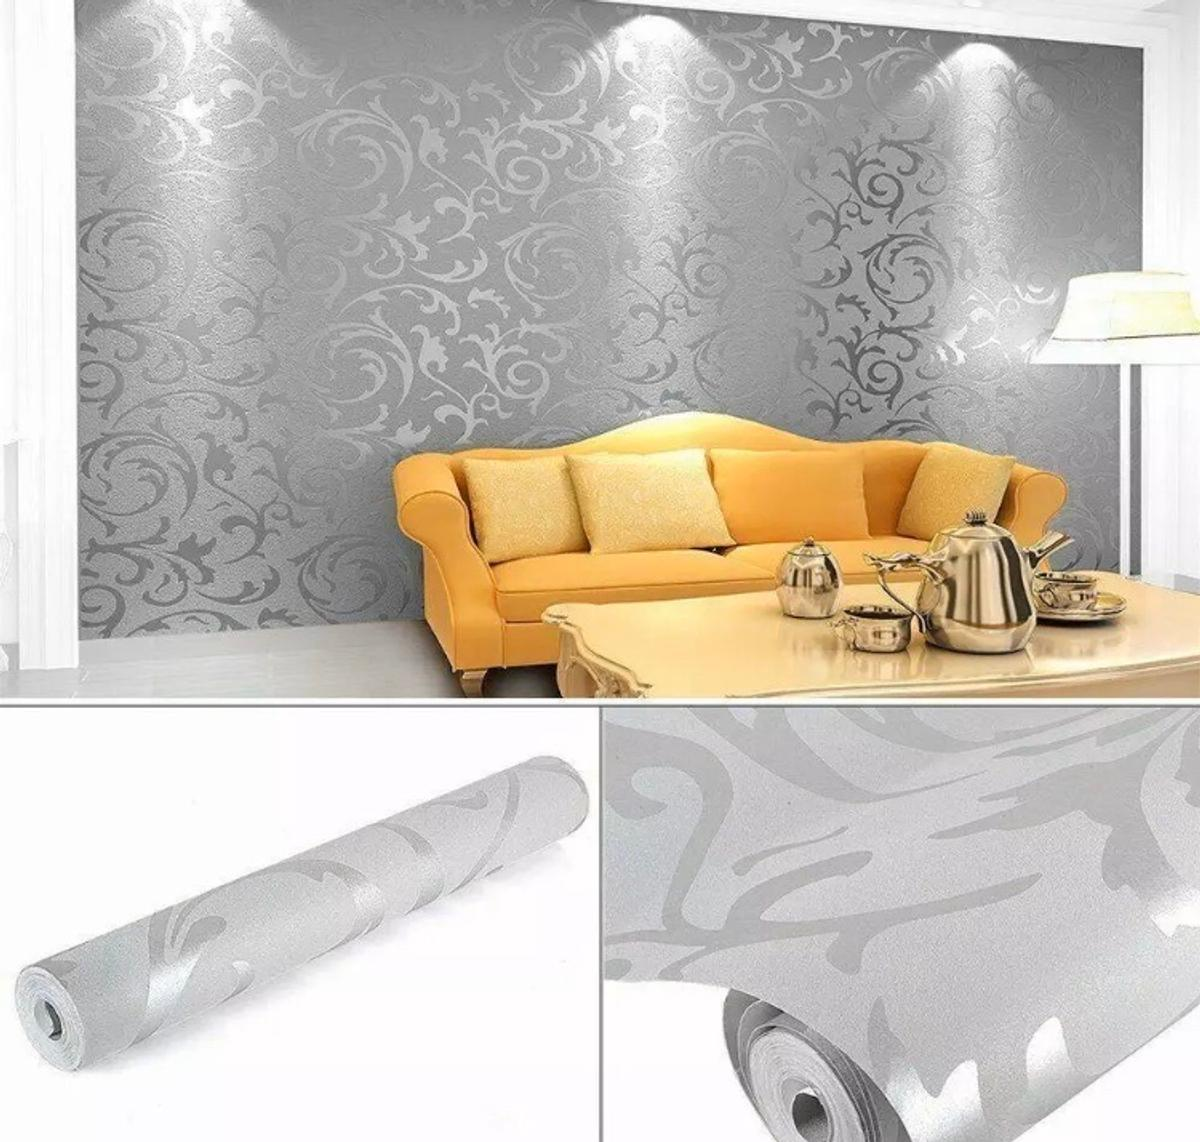 3D Victorian Damask Luxury Embossed Wallpaper Roll - Silver & Grey Design  Extra-thick vinyl material Coverage:53cm x 10m (5.3m2)  Please get in touch for more information if interested. Only 4 rolls available, £6 per roll